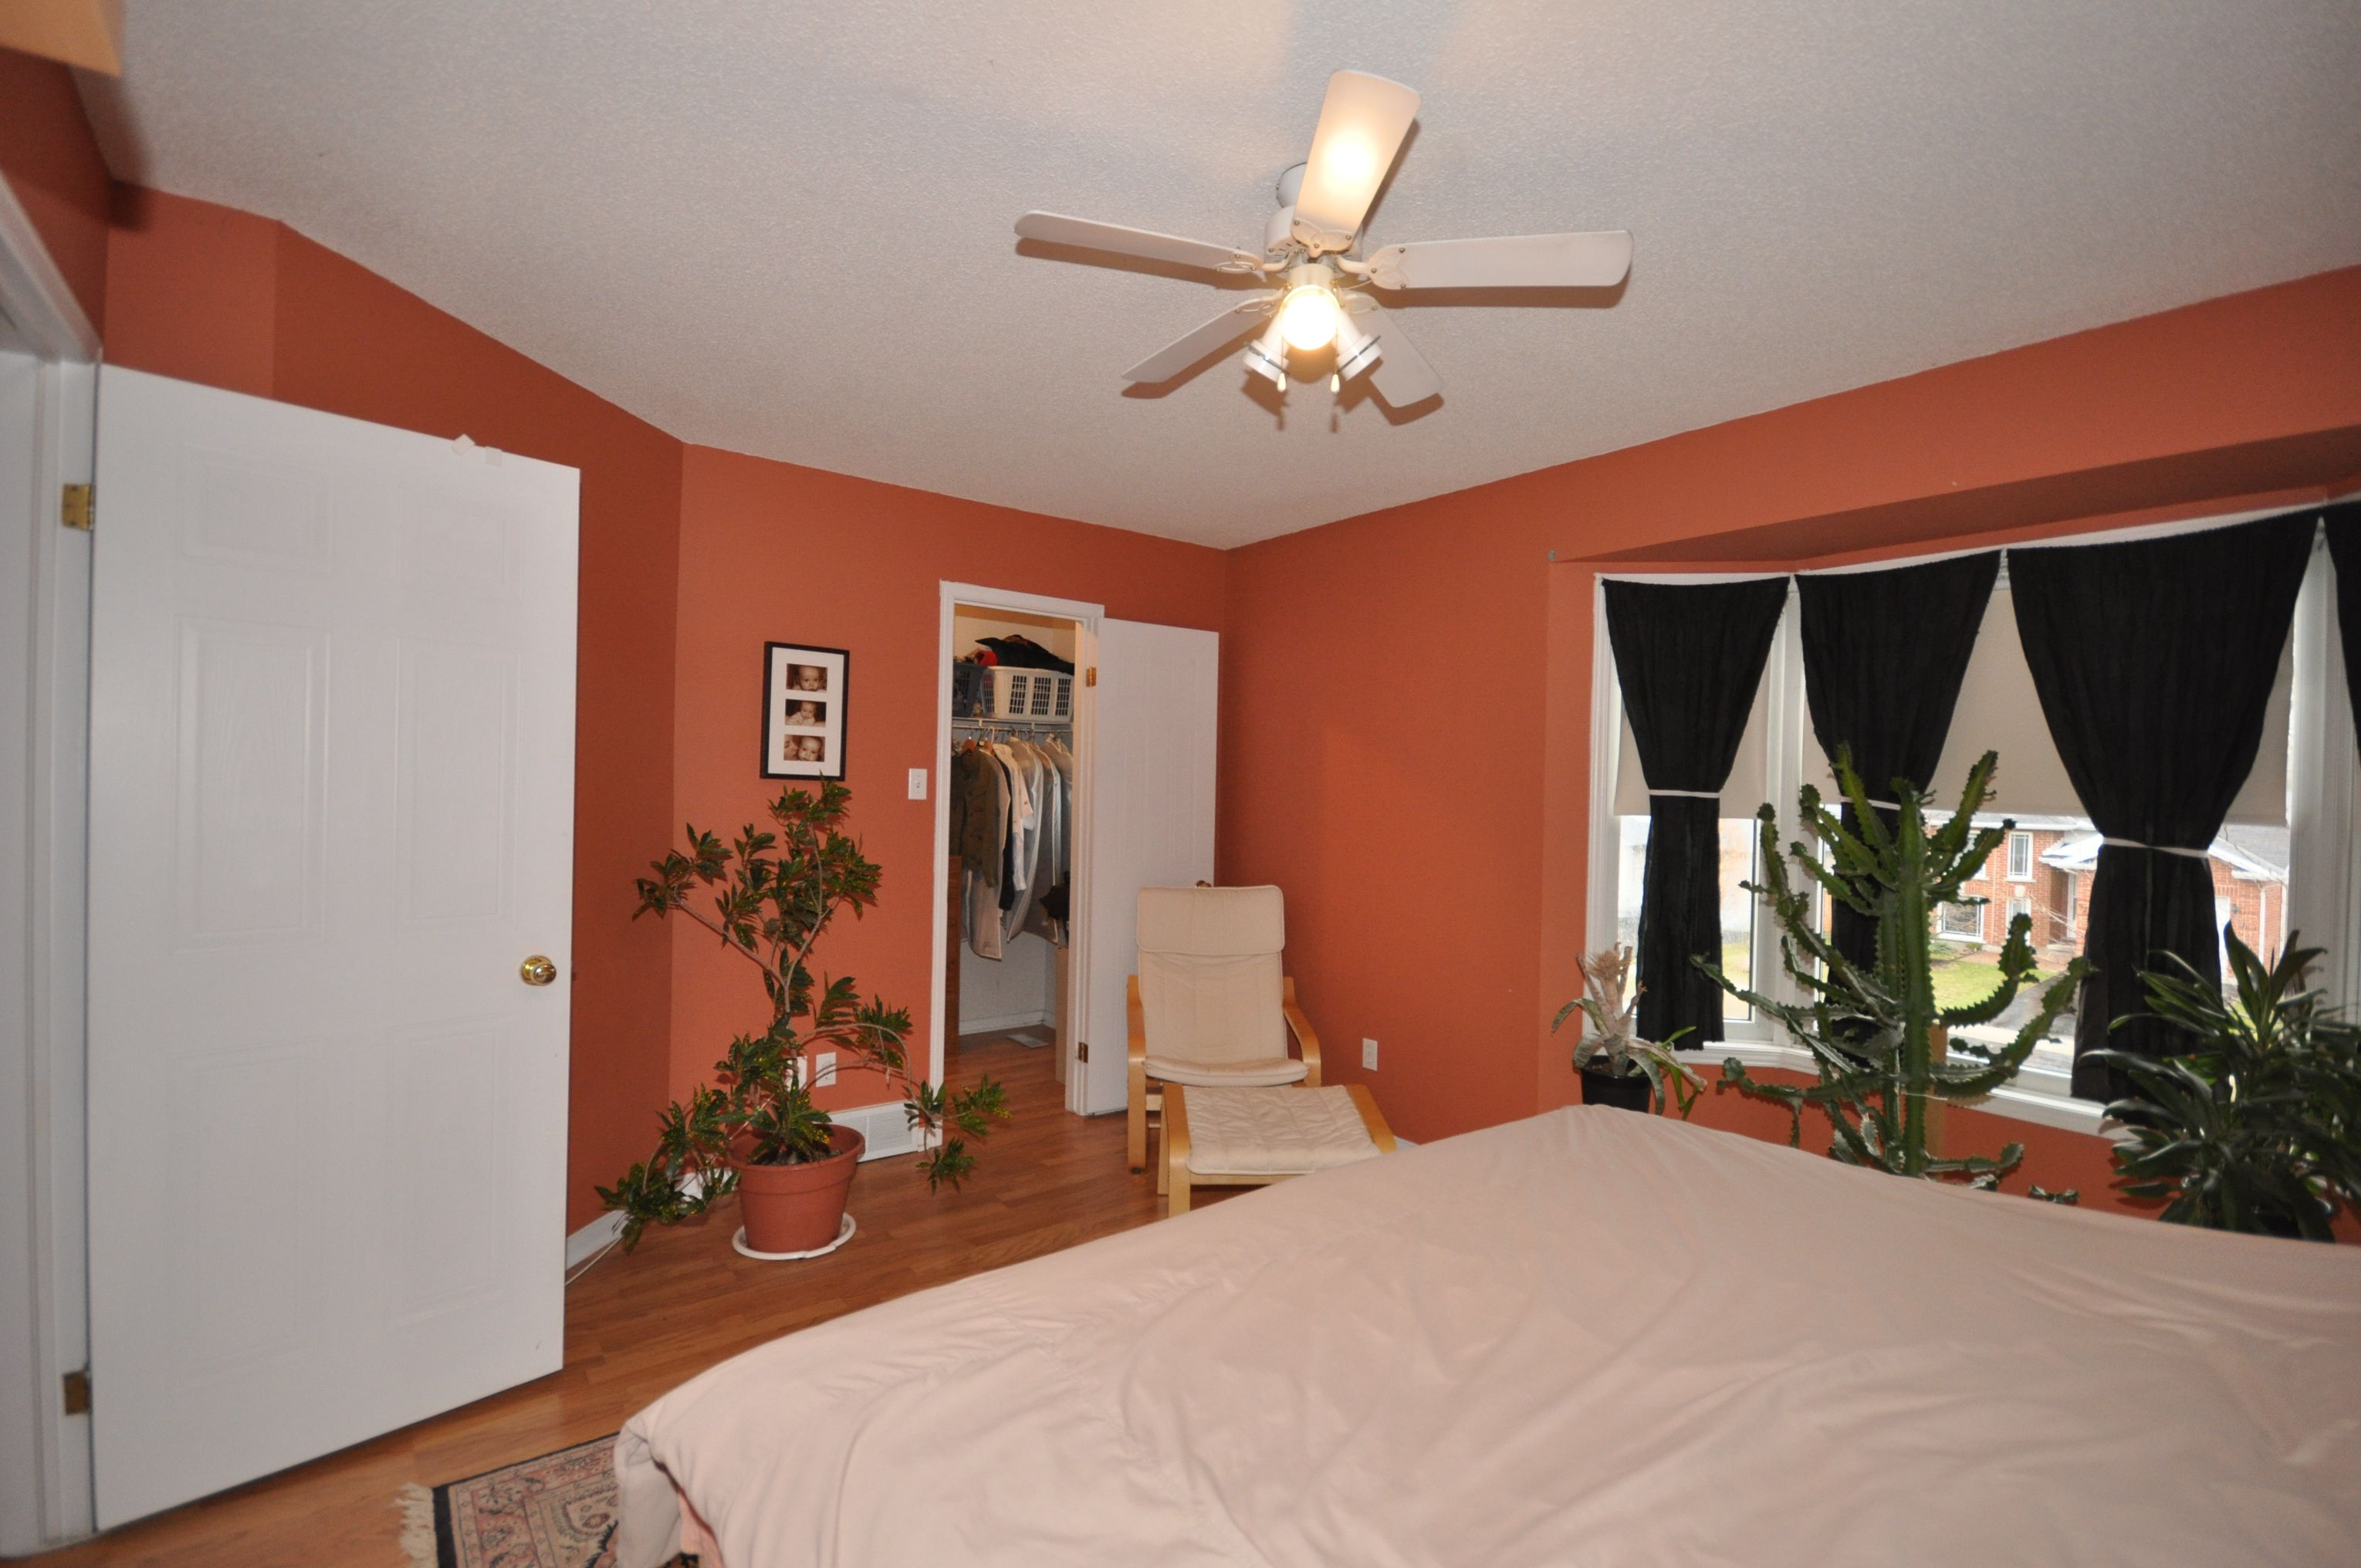 Upstairs you will find 3 nice sized bedrooms and a full bath